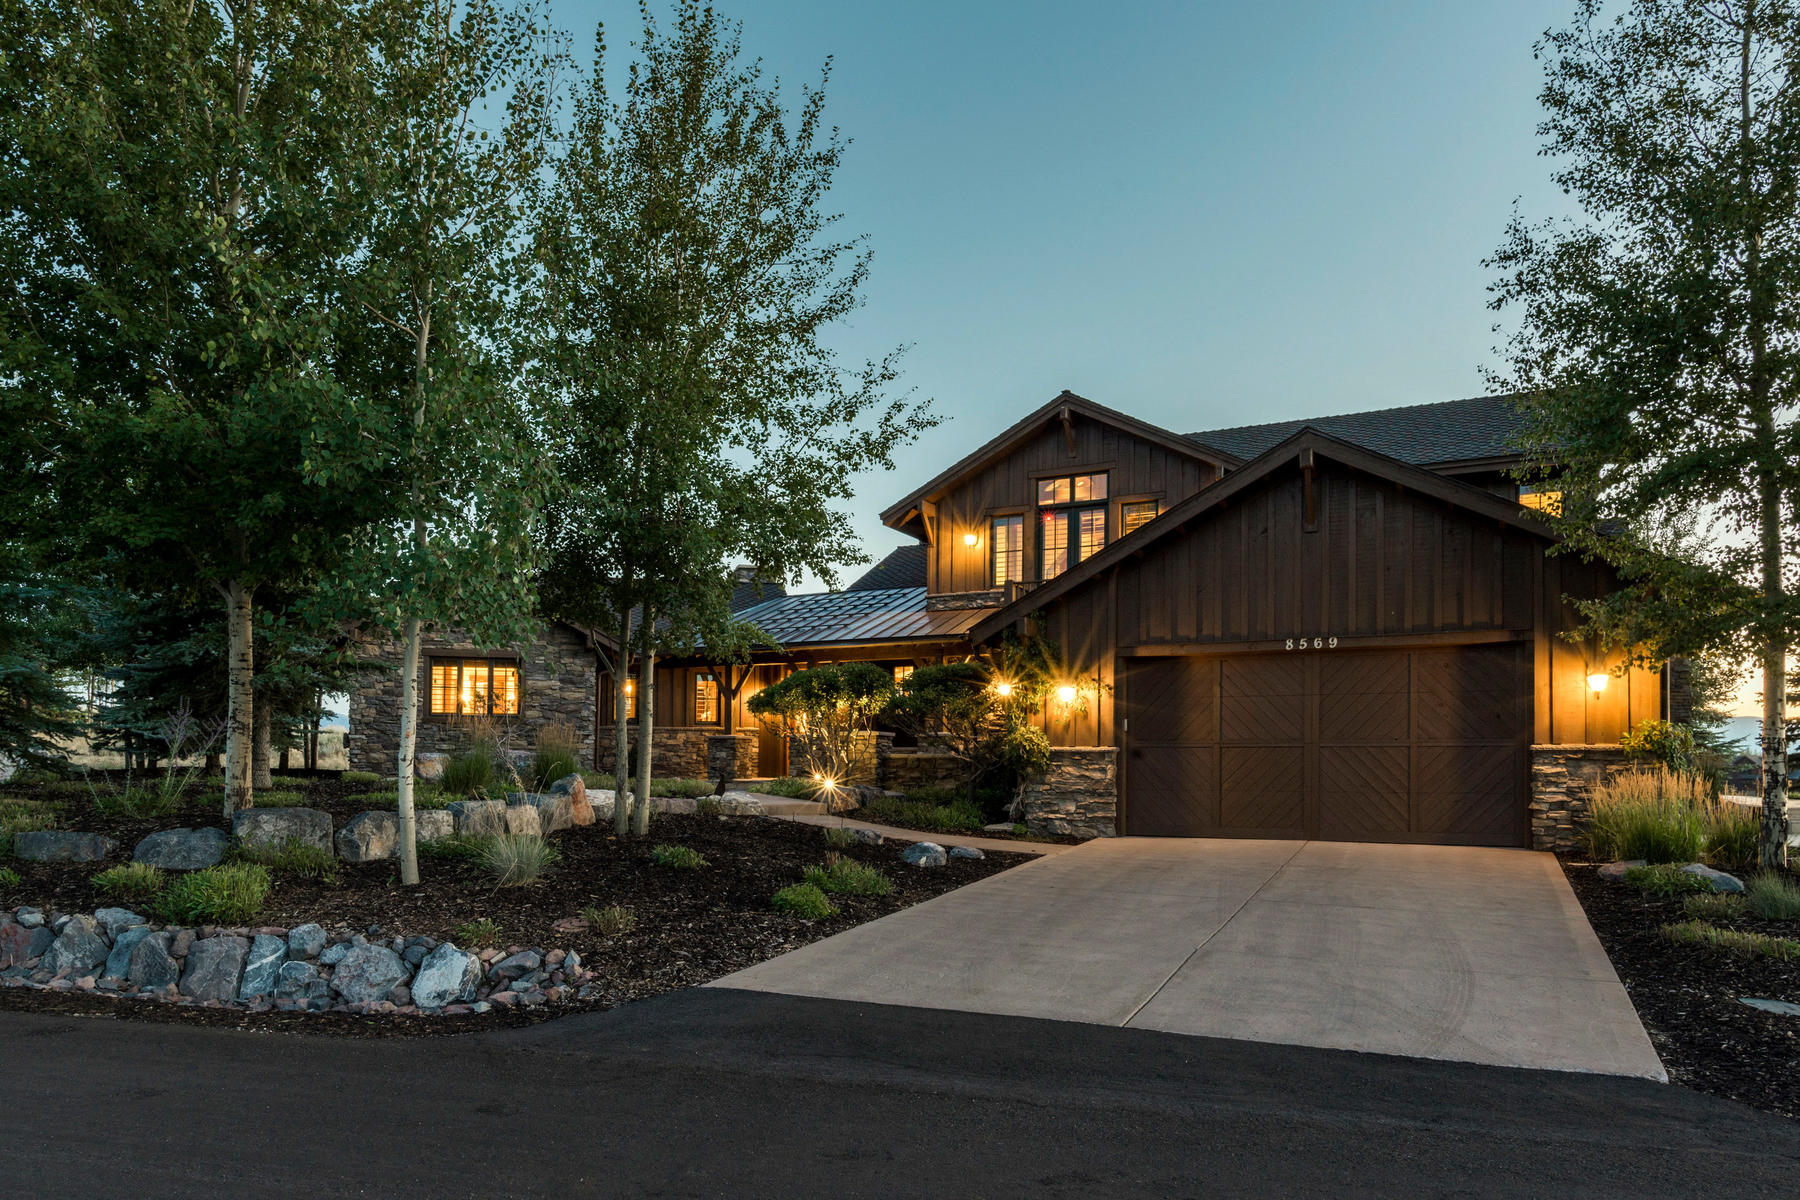 Single Family Home for Sale at Gorgeous Modified Remington Golf Club Cabin on 9th Fairway 8569 Ranch Club Ct Park City, Utah, 84098 United States